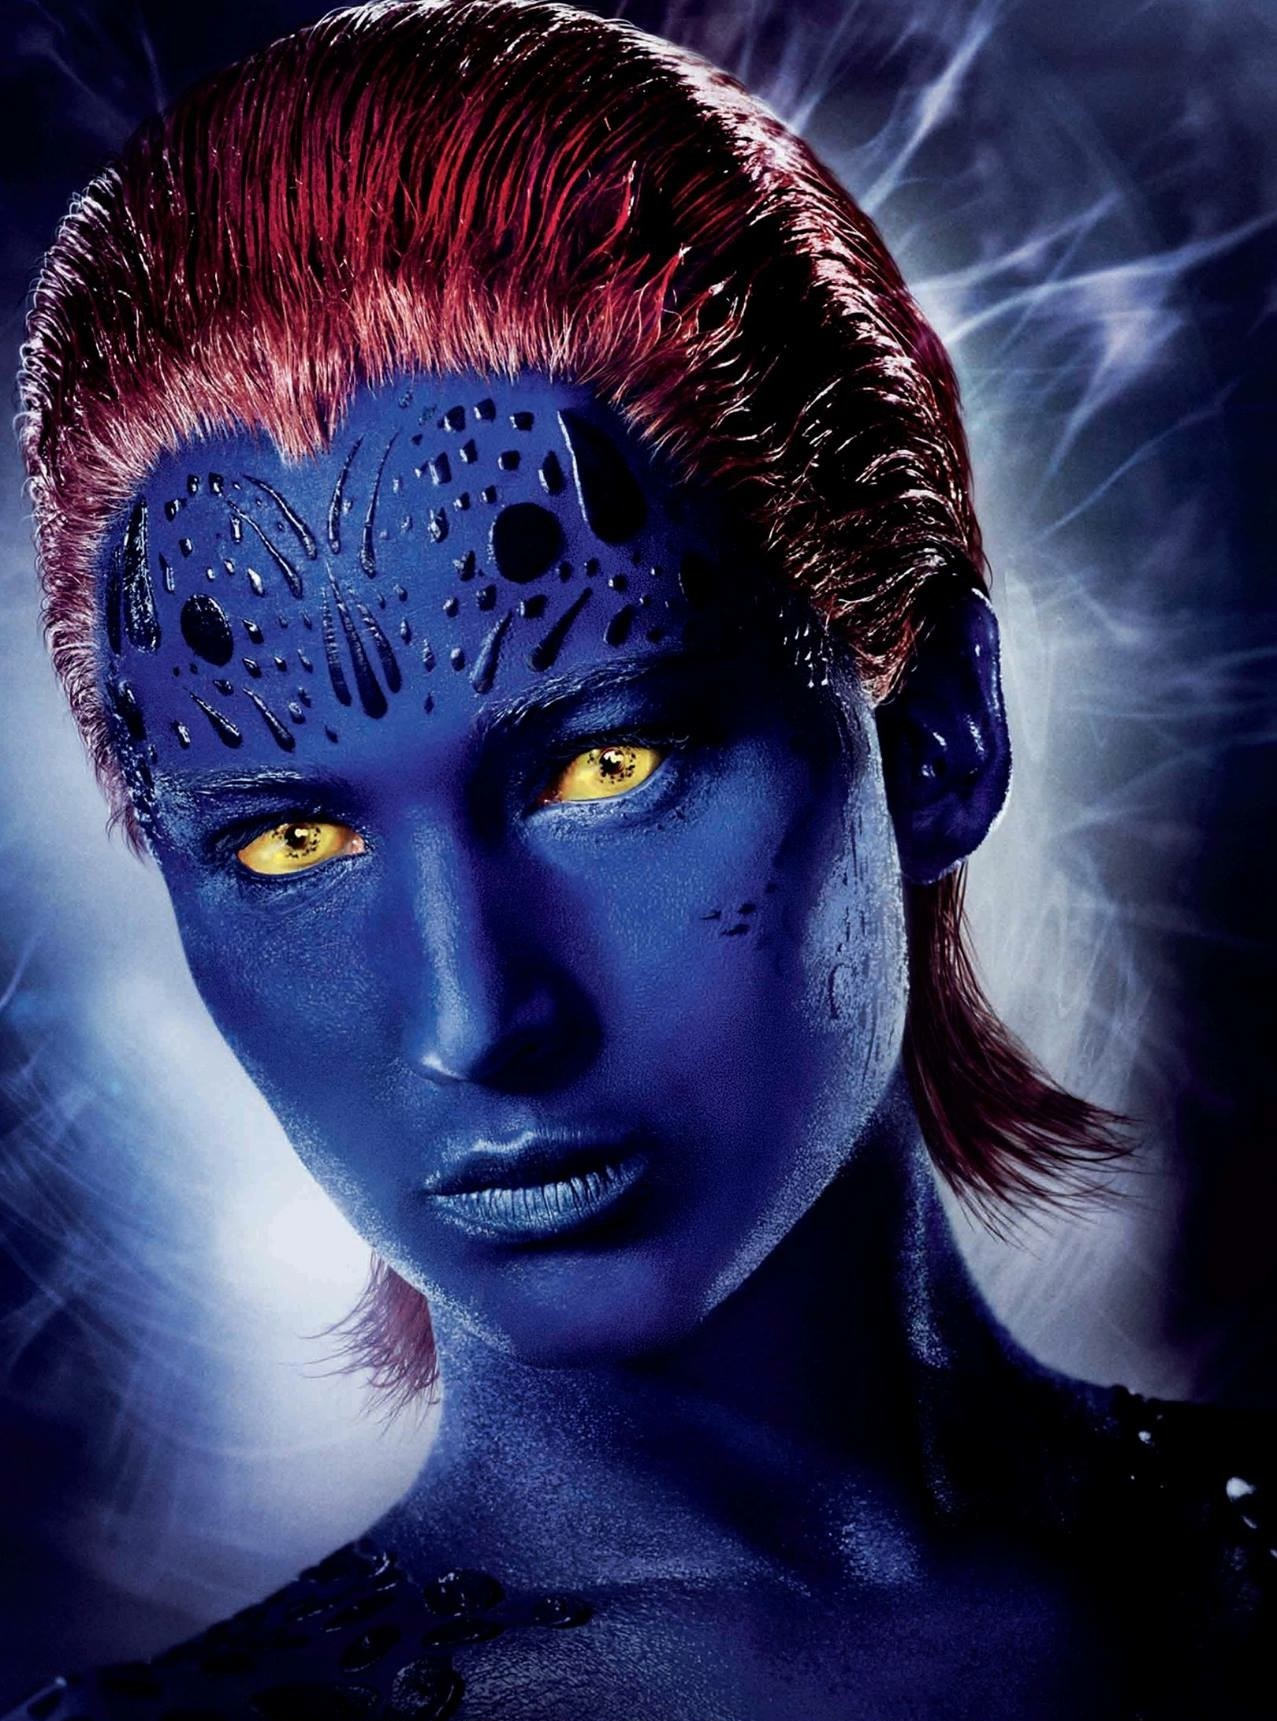 Mystique | X-Men Movies Wiki | FANDOM powered by Wikia